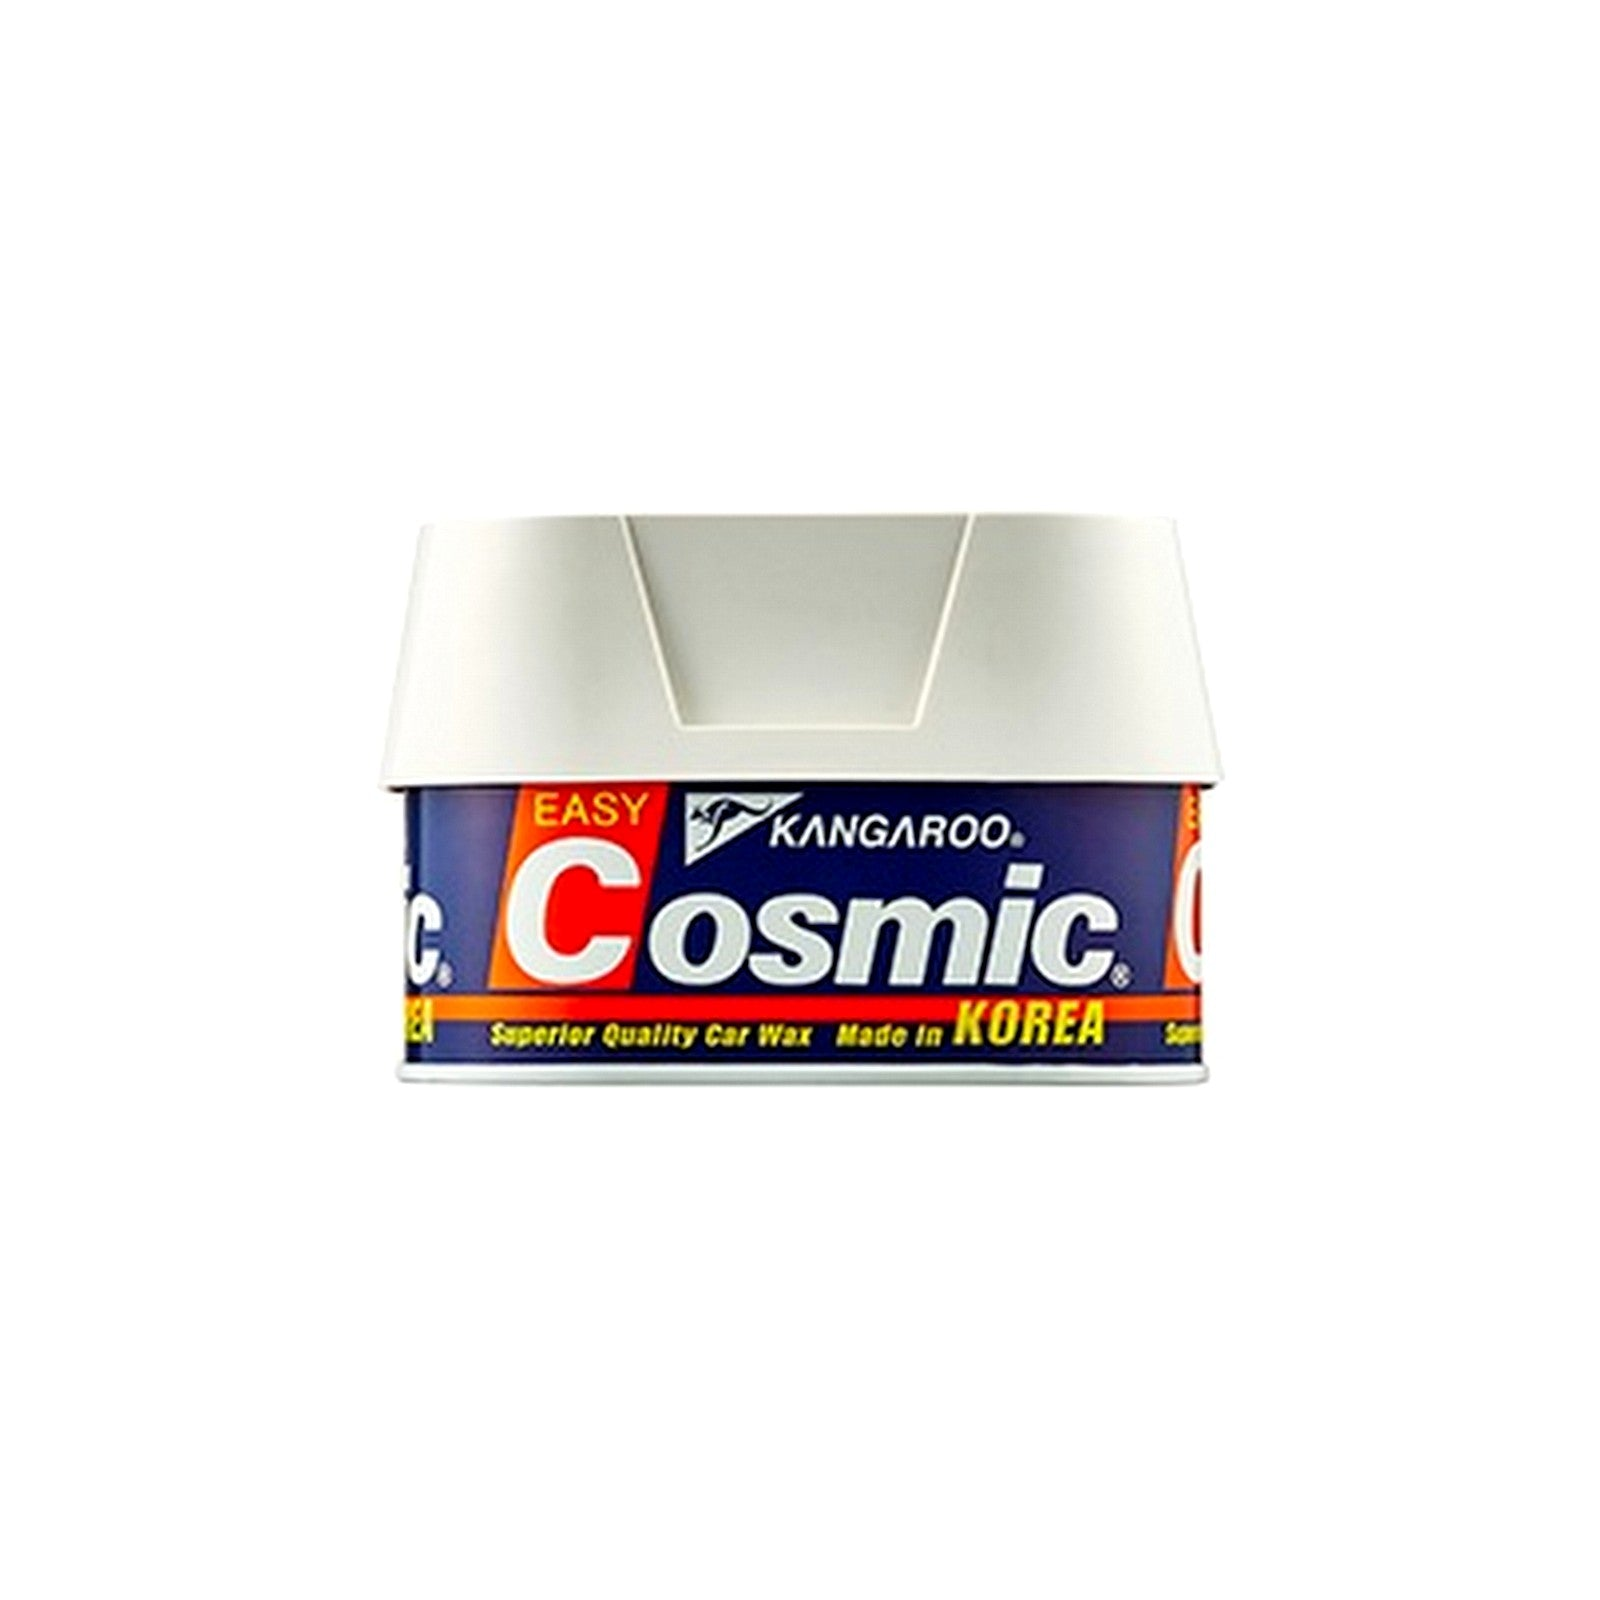 CAR WAX & POLISH WITH APPLICATOR - COSMIC